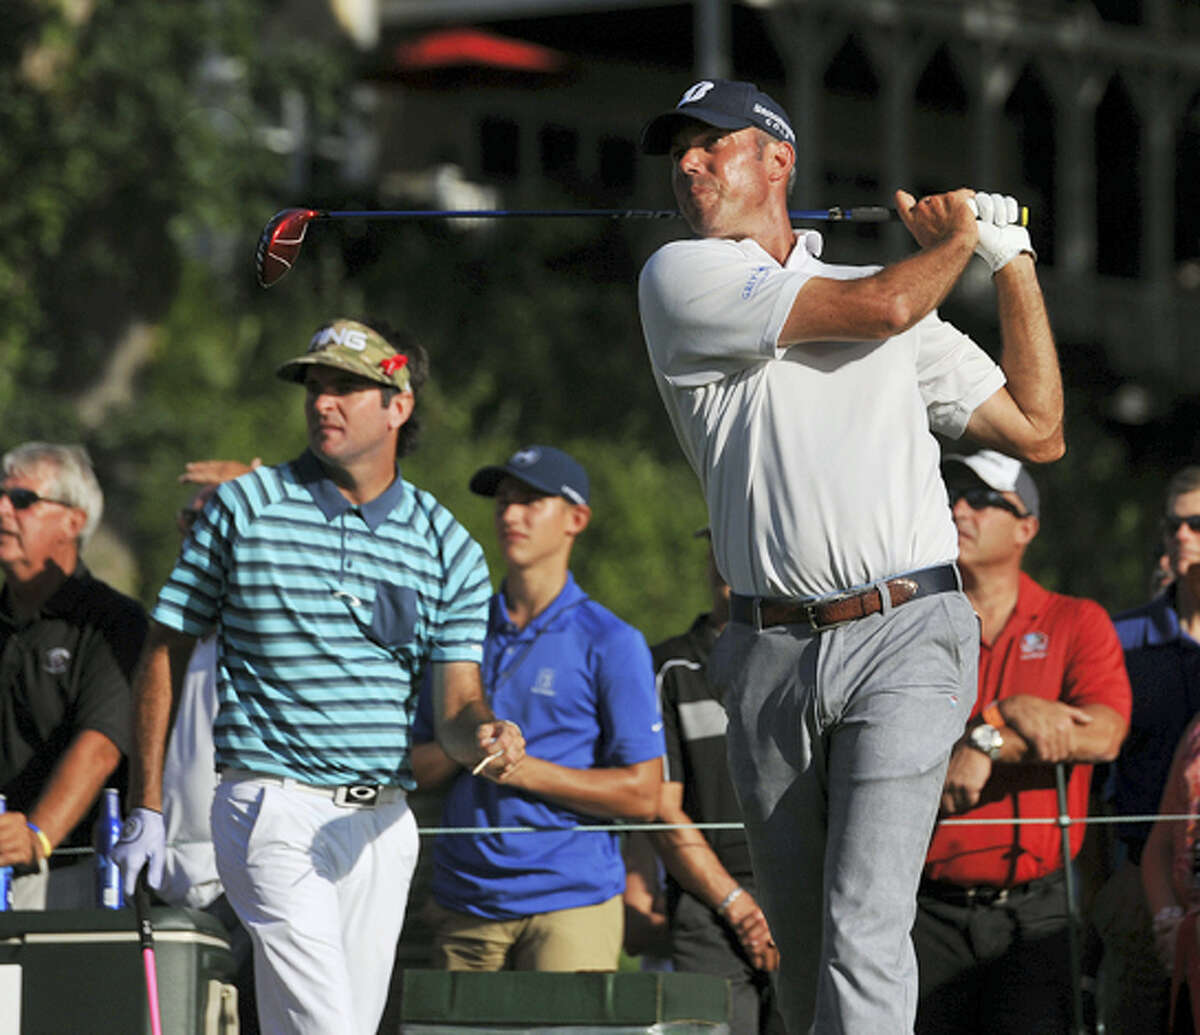 Matt Kuchar, shown here during the first round of the Travelers championship on Thursday, stands at 4-under par after the second round.